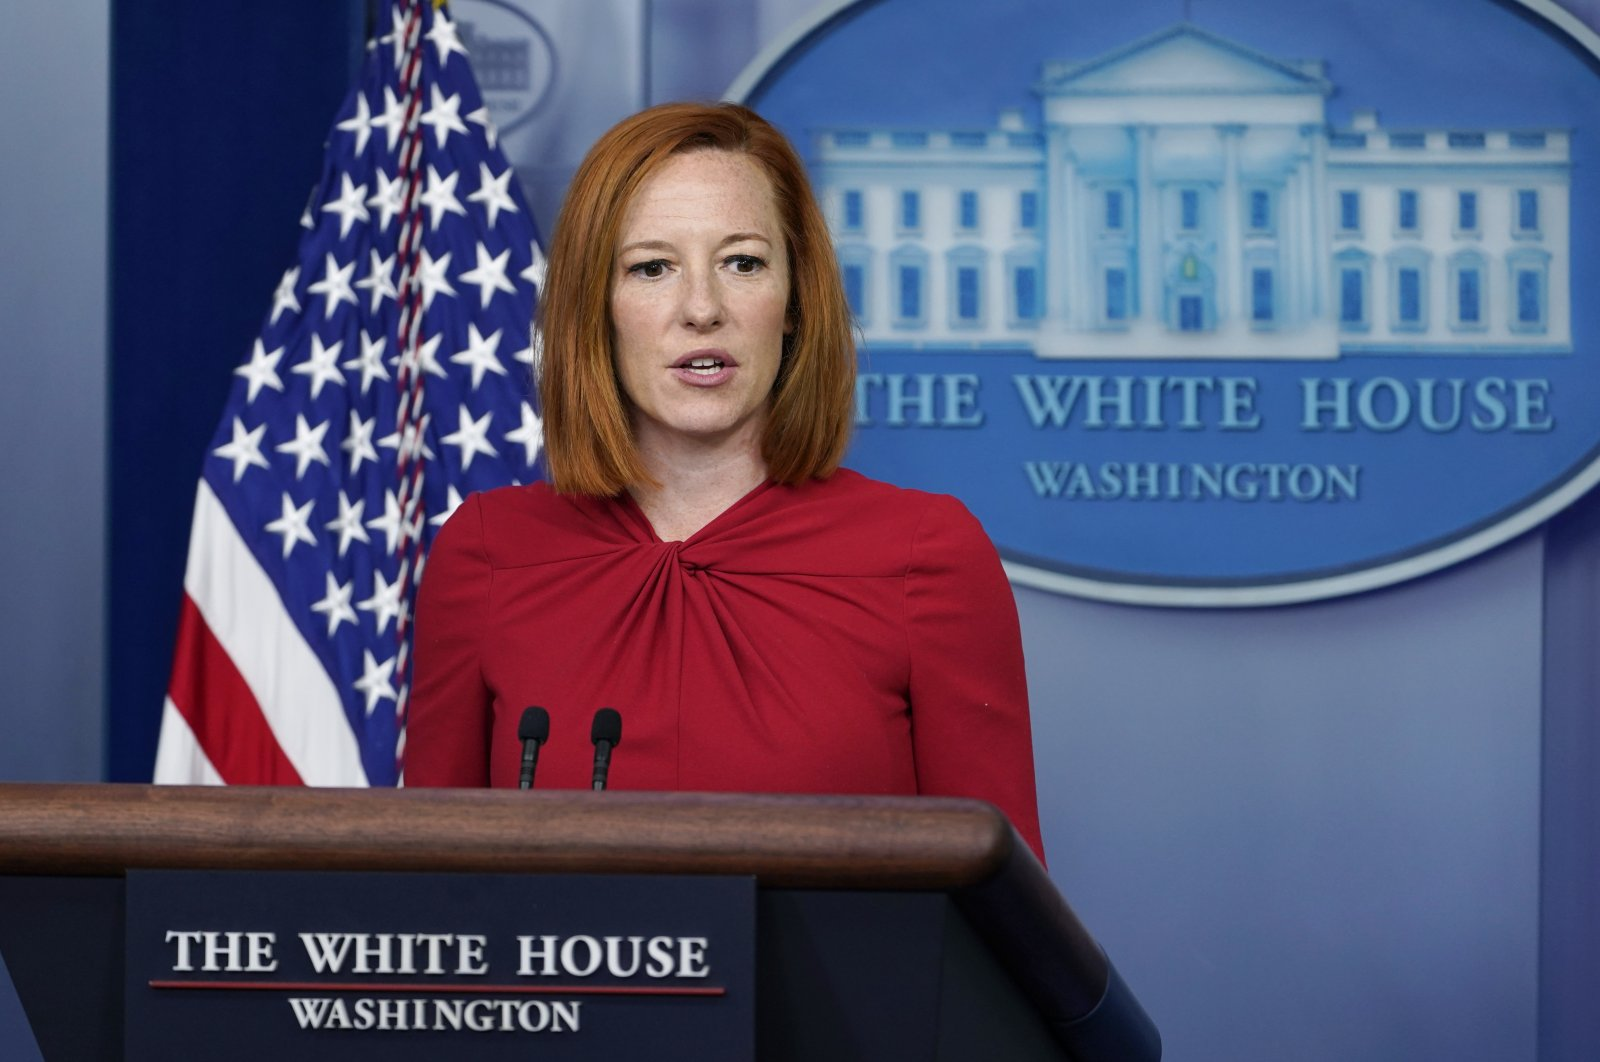 White House press secretary Jen Psaki speaks during the daily briefing at the White House in Washington, U.S. Monday, July 19, 2021. (AP Photo)